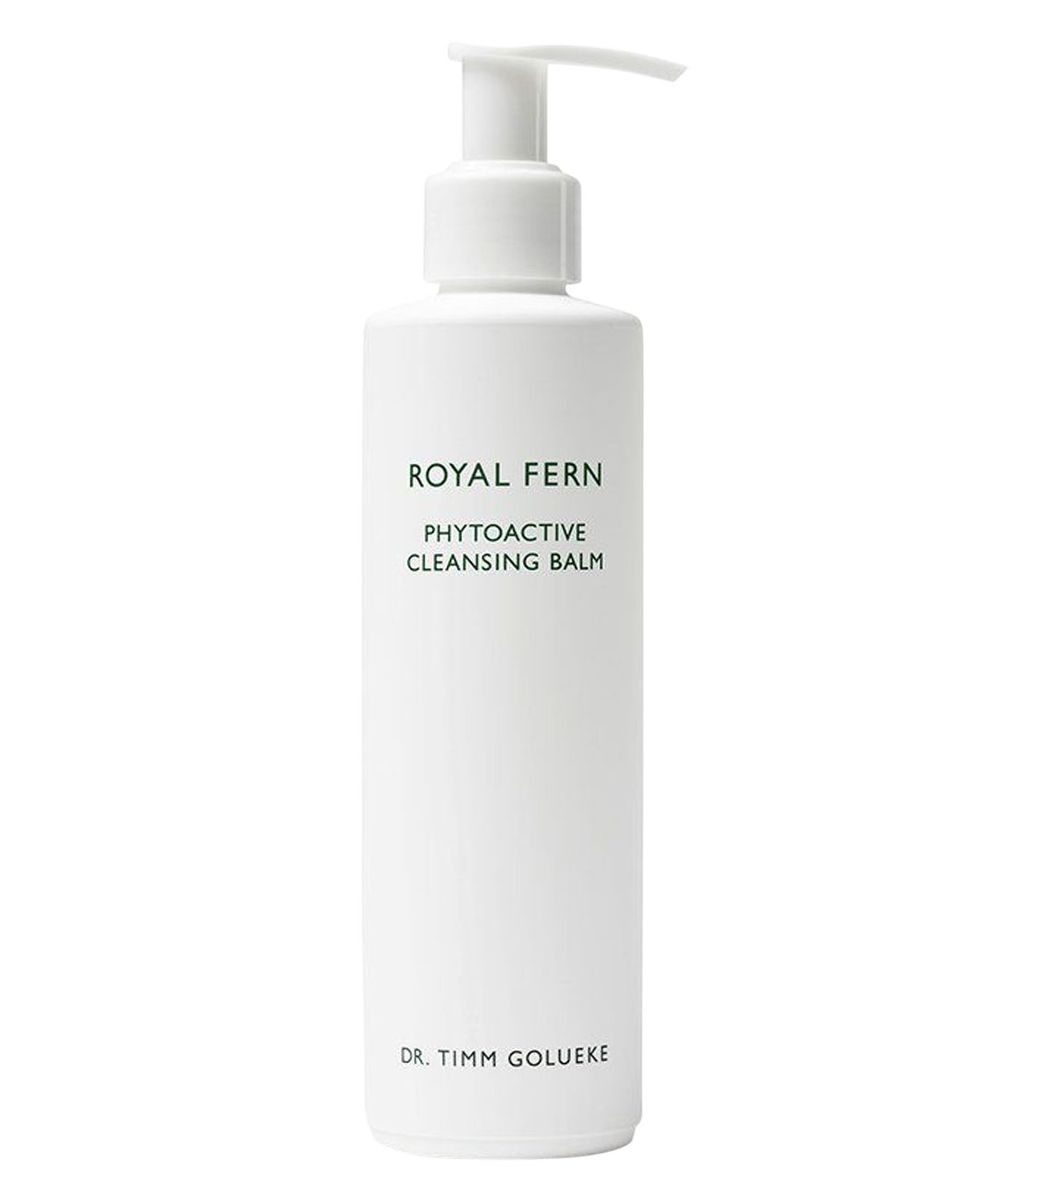 Royal Fern Phytoactive Cleansing Balm In White